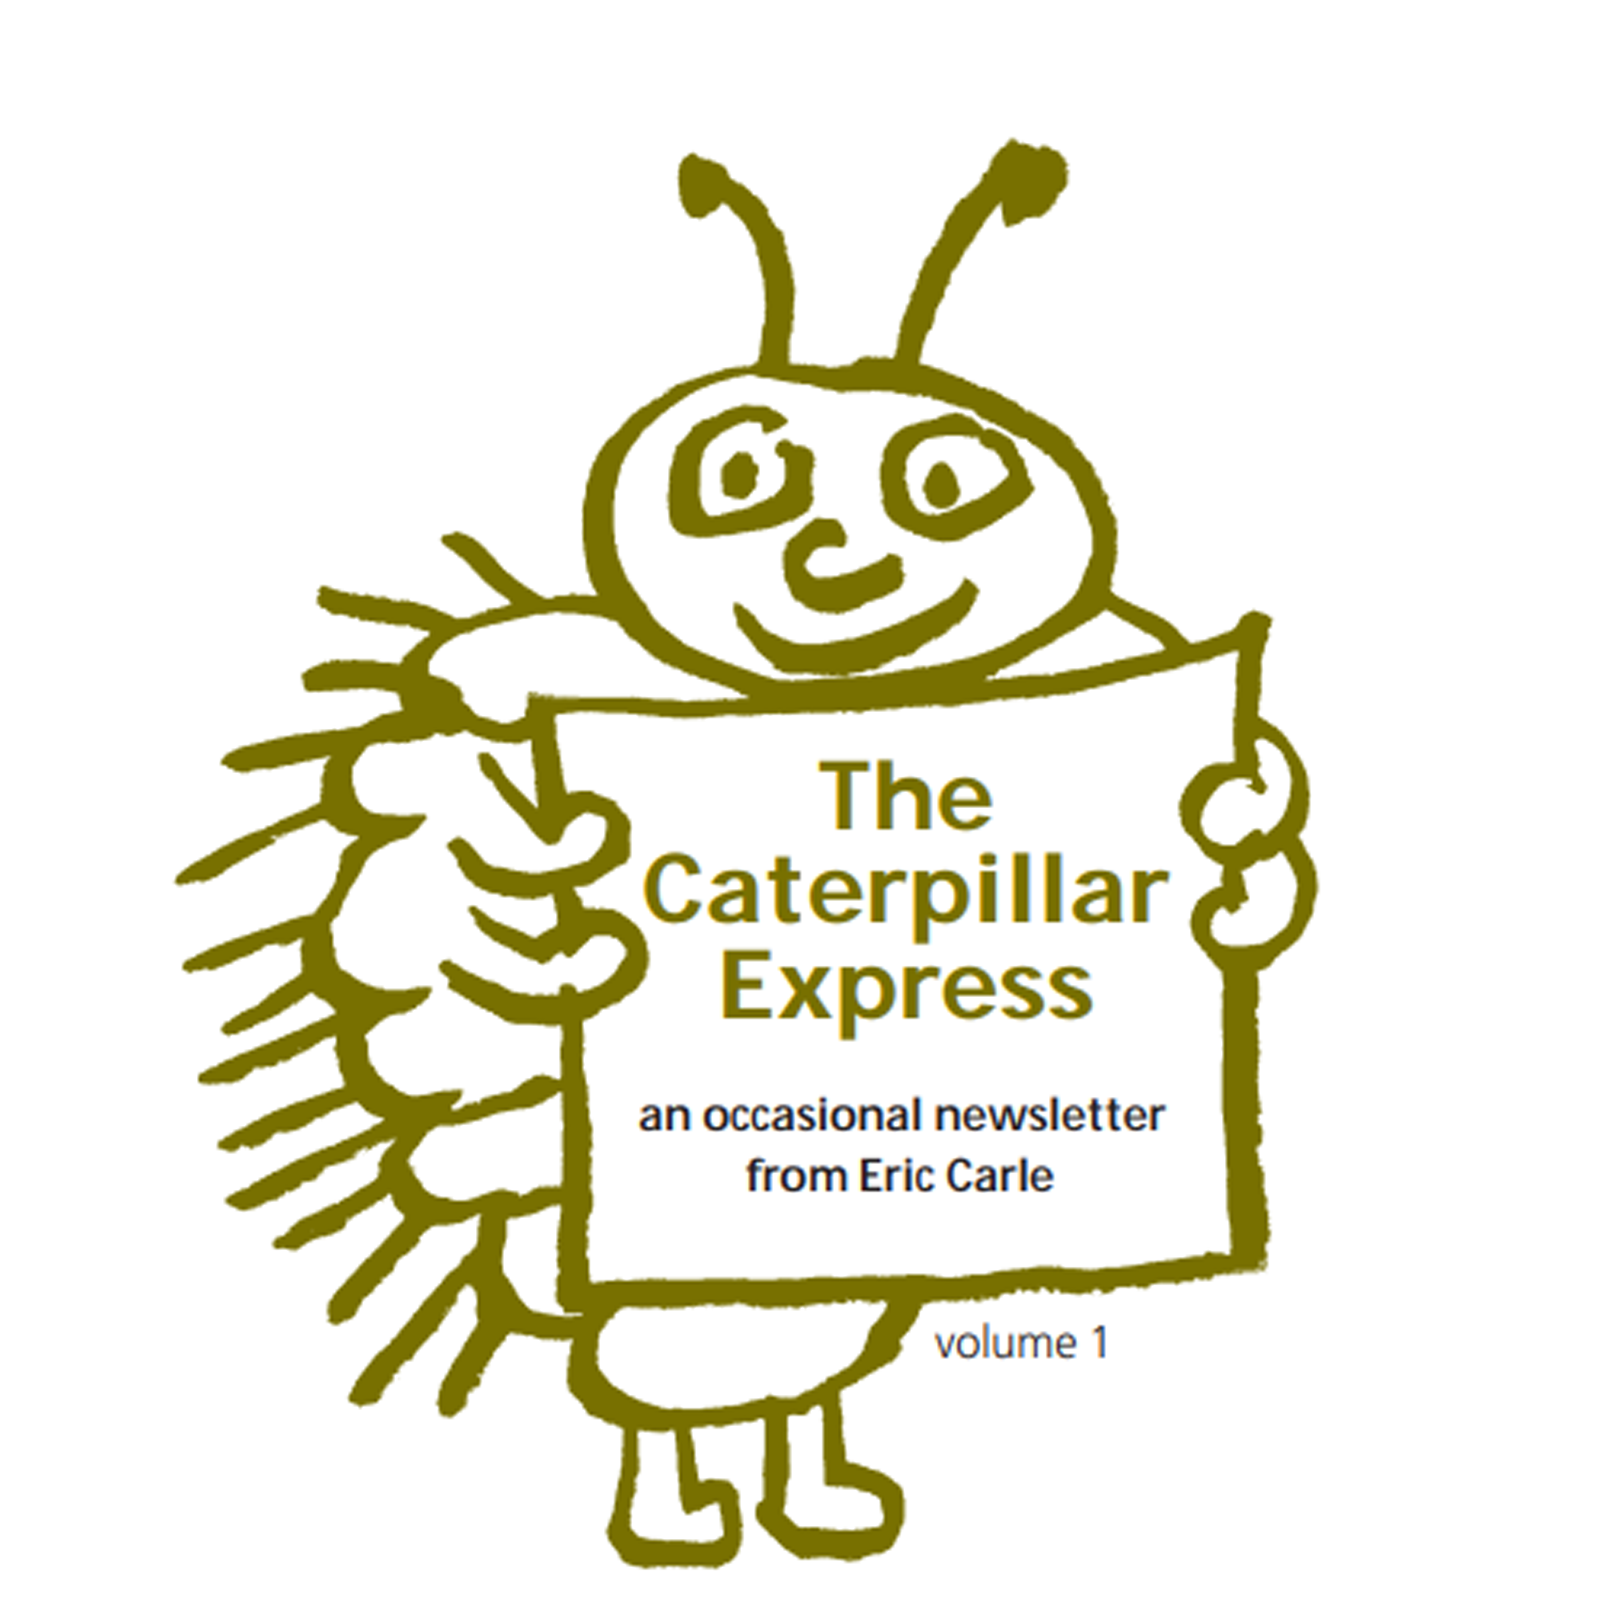 Caterpillar Express Volume 1